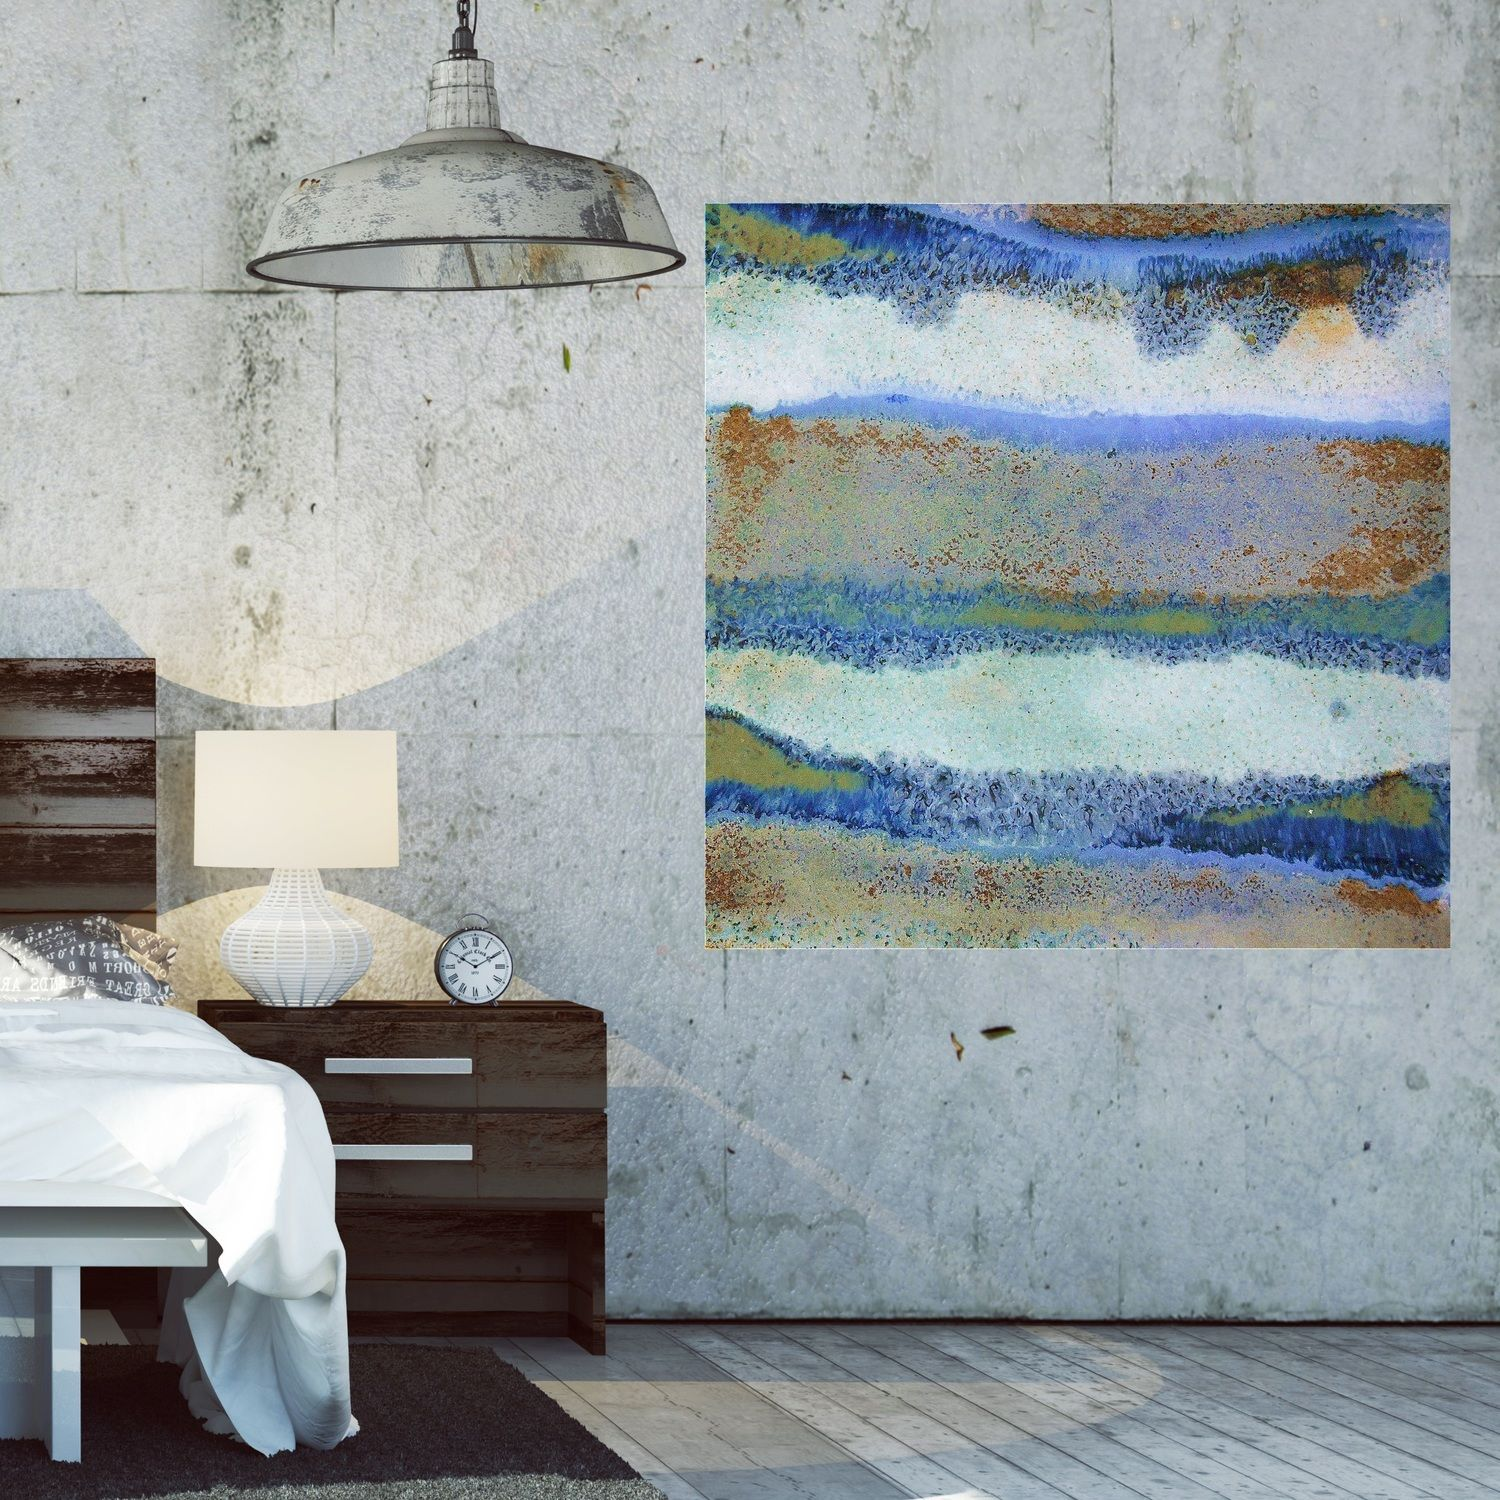 How to make your industrial loft beautiful with oversized artwork in